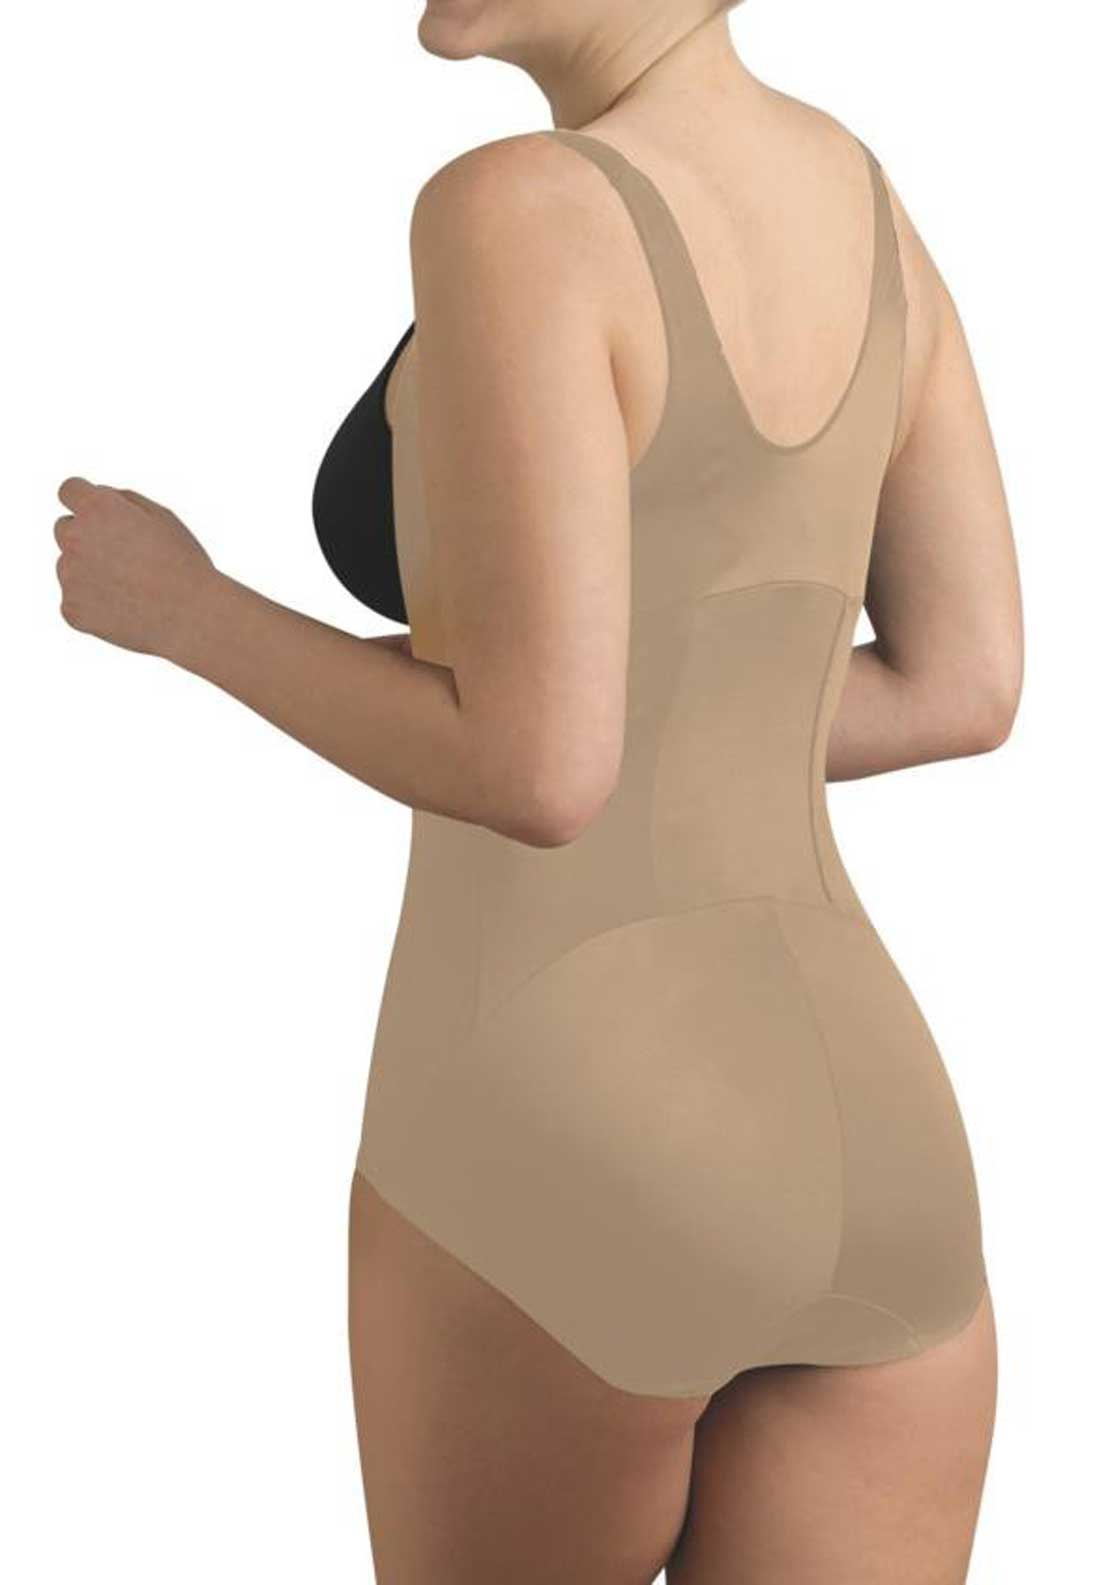 Cupid Intimate Firm Control Torsette Bodybriefer, Nude